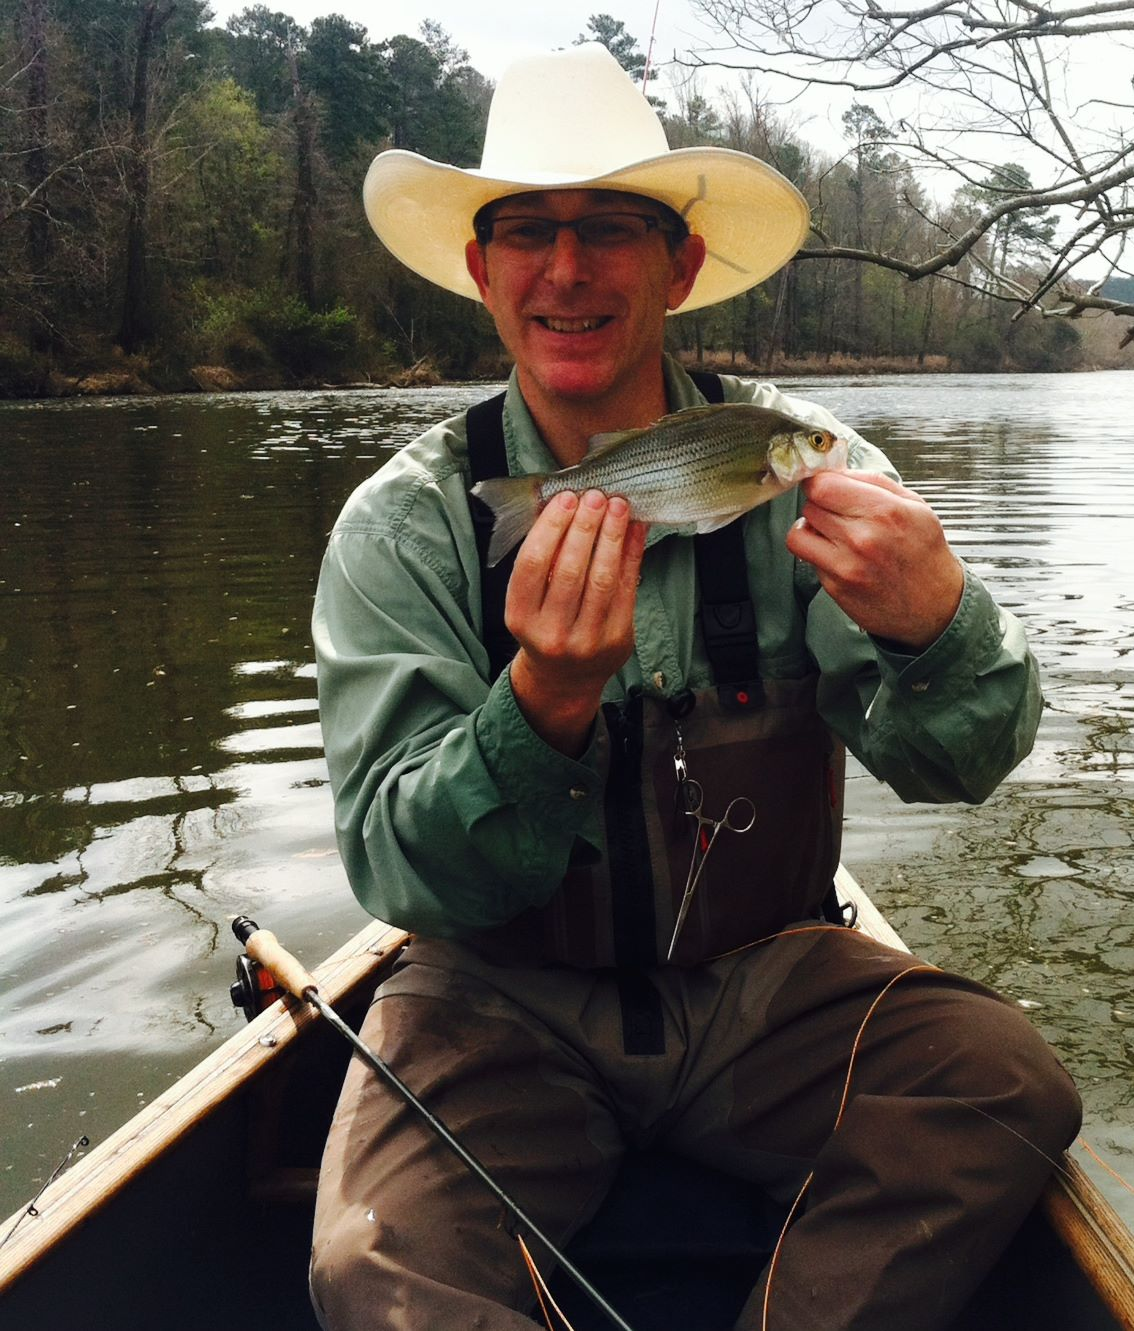 Rob fishing on the Haw River